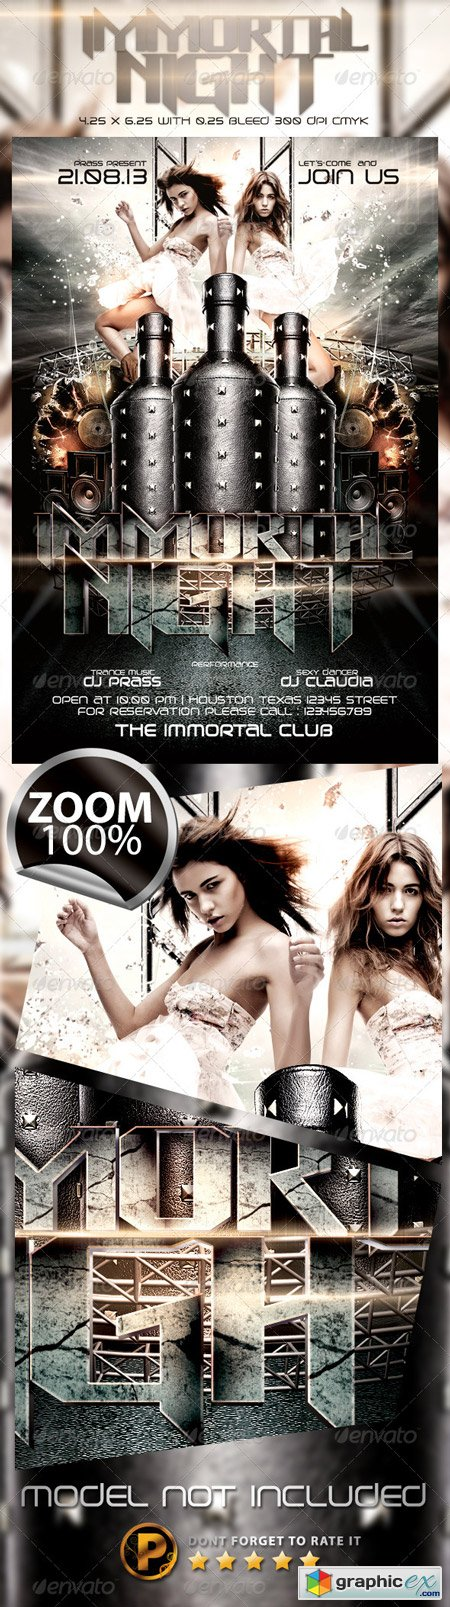 Immortal Night Flyer Template